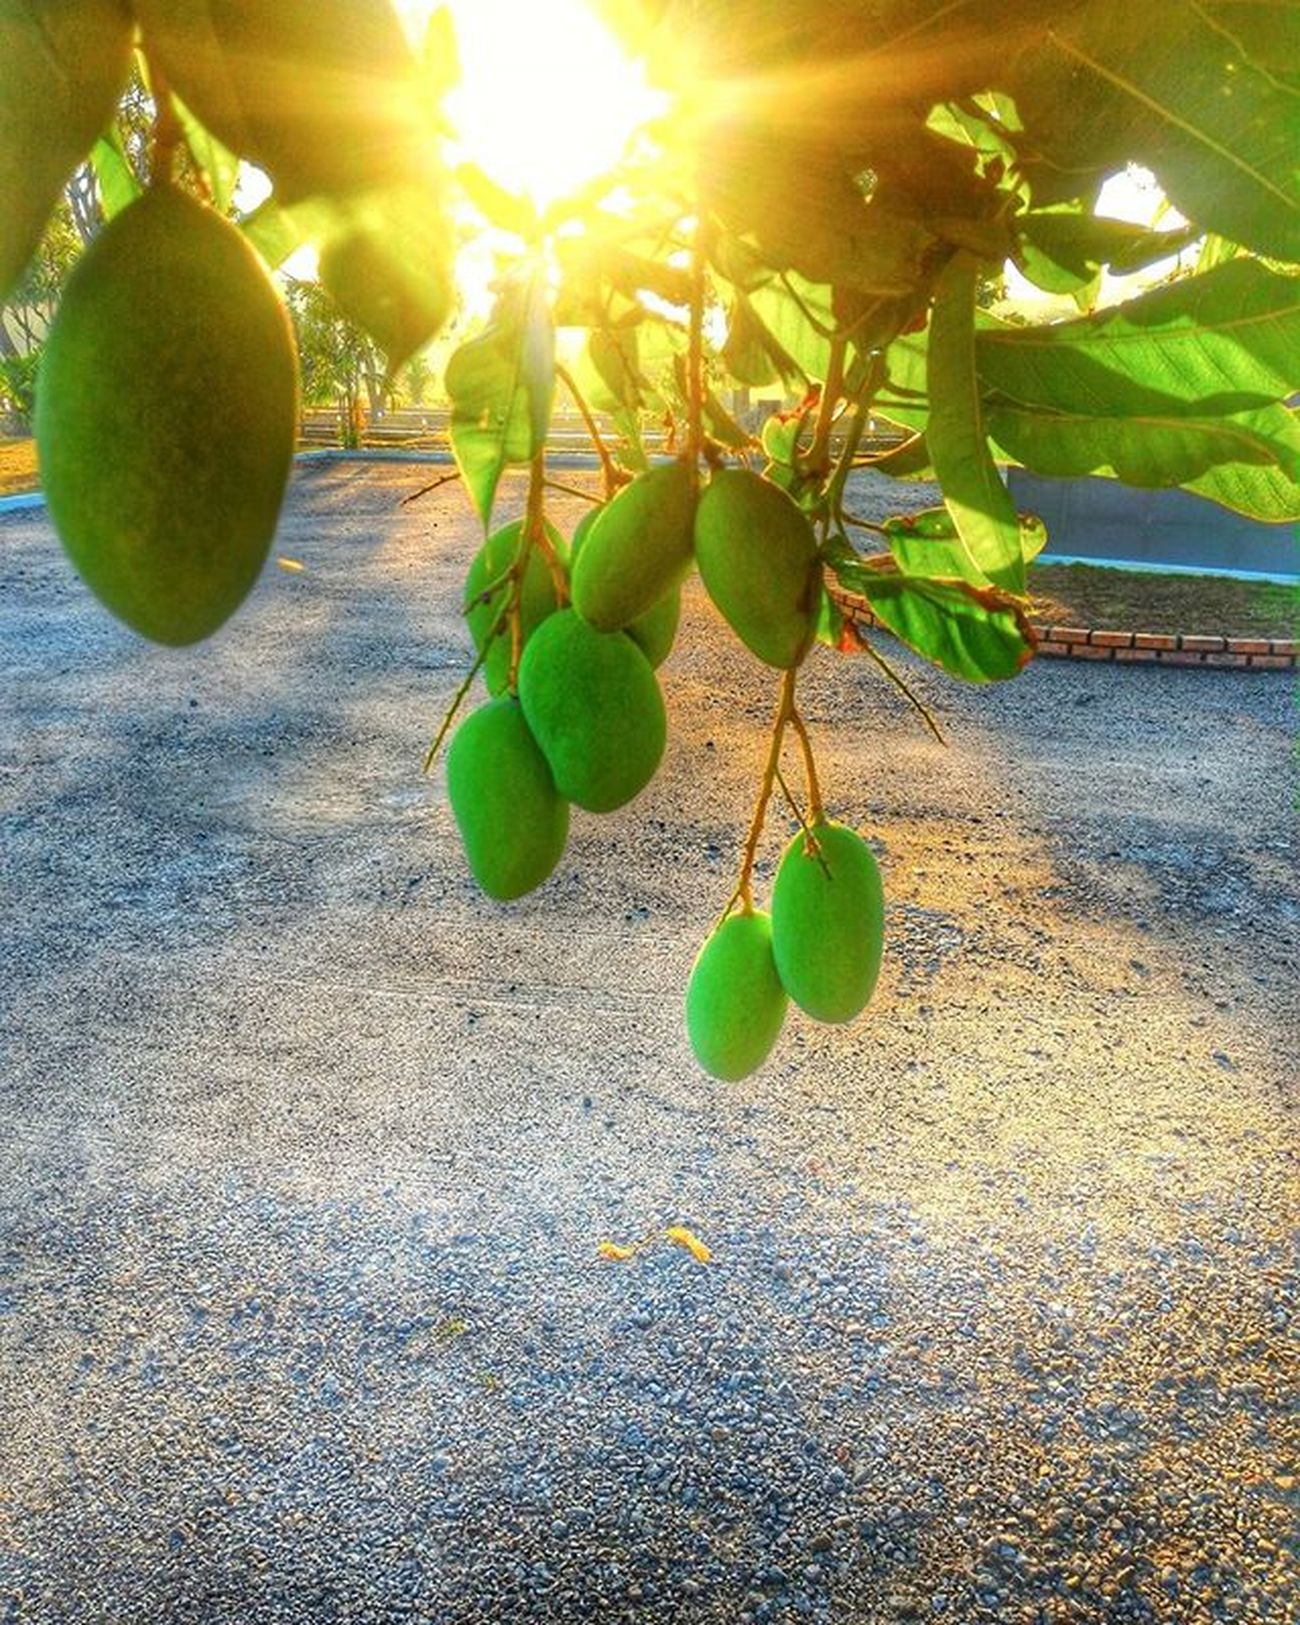 🌄🍏🍊🍋 Goodmorninginsta Instamango Mango Fruits Sunlight Sunrays Sunrise Nofilter Asusphotography Pixelmaster Httc Natureperfection Naturegram Zenfonephotography